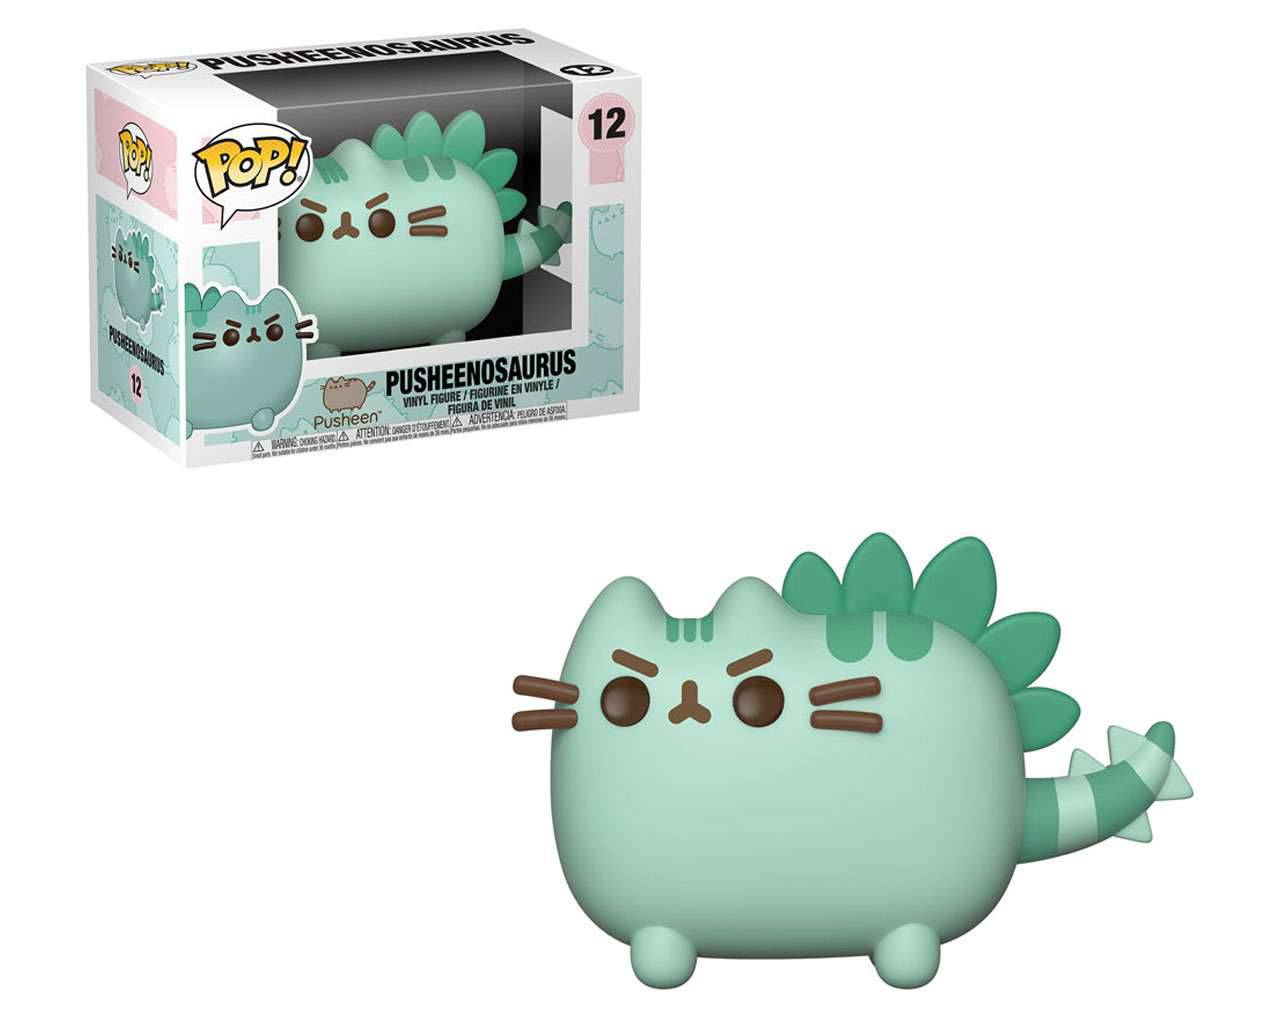 Pusheenosaurus Pop! Vinyl